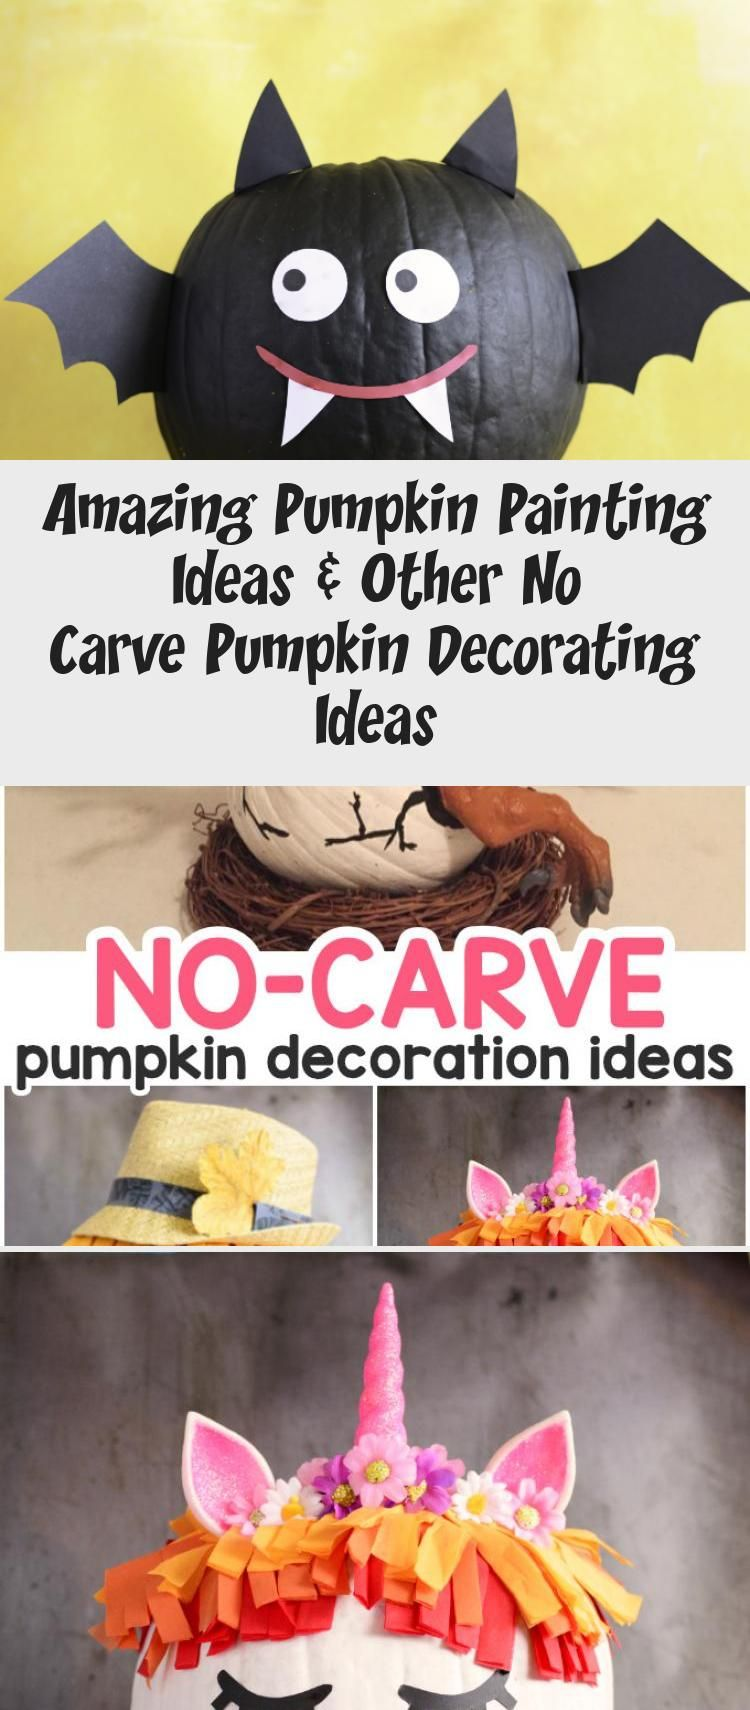 Amazing Pumpkin Painting Ideas & Other No Carve Pumpkin Decorating Ideas #Bathroompaintingideas #Smallpaintingideas #paintingideasTumblr #paintingideasInspiration #paintingideasLandscape #pumpkinpaintingideas